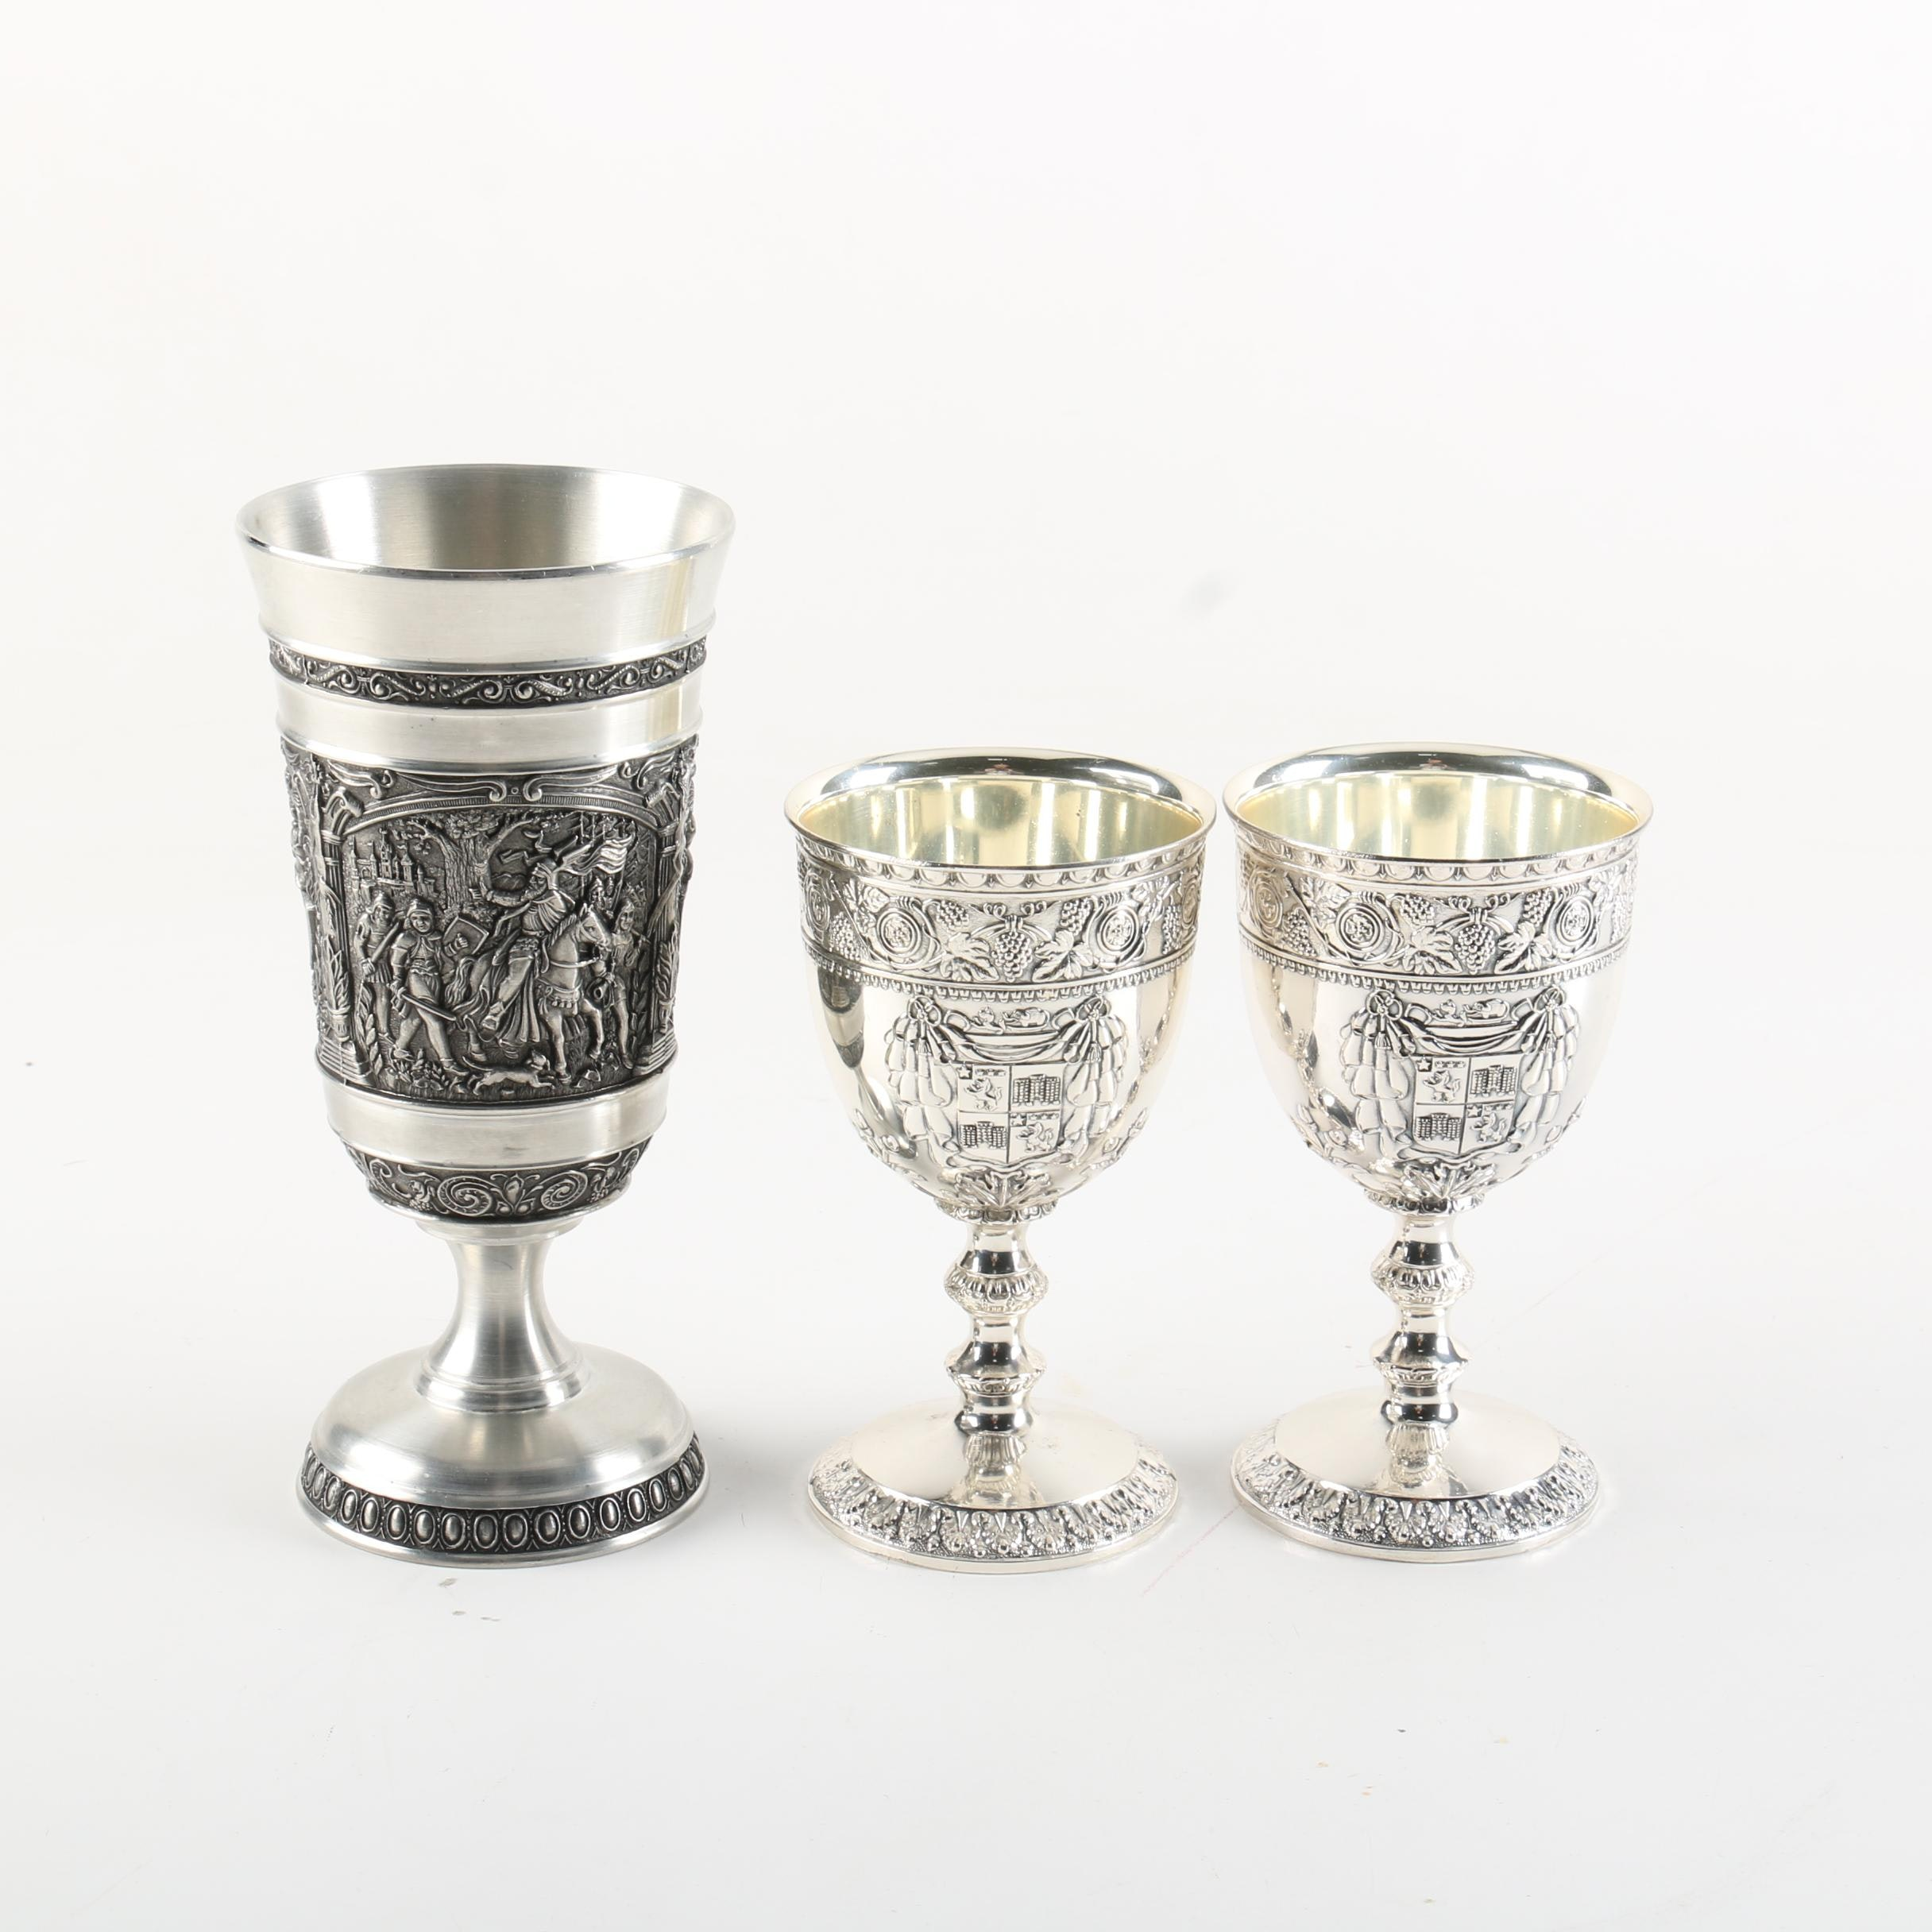 Corbell & Co Silver Plate Goblets and BMF C. Koch Pewter Goblet